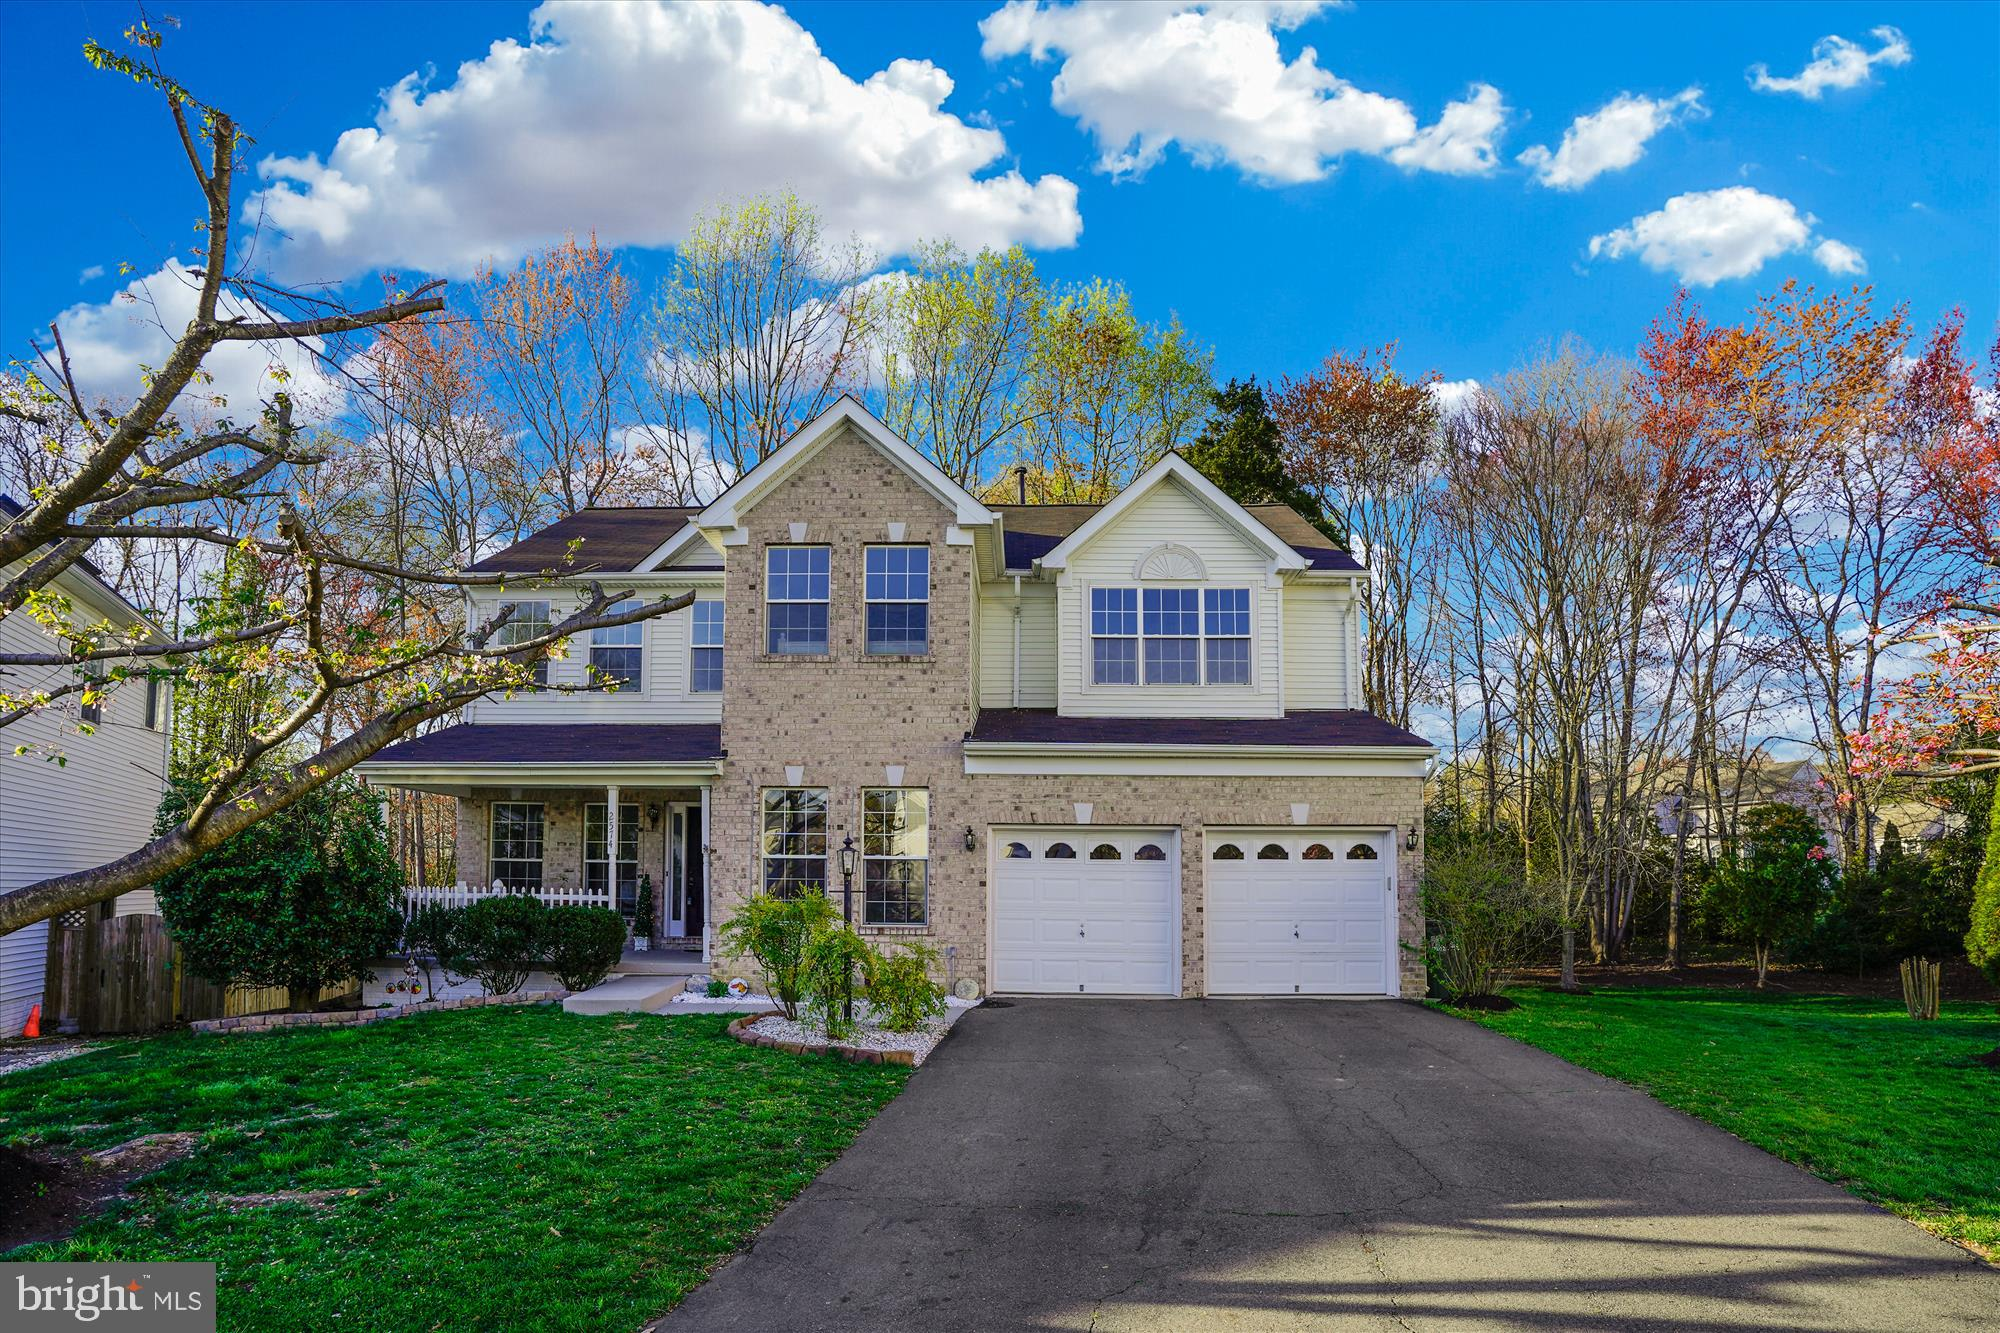 COME AND JOIN US FOR A VIRTUAL OPEN HOUSE THIS SUNDAY MAY 31ST AT 1PM AT THIS BEAUTIFUL COLONIAL HOME MINUTES FROM COMMUTER ROUTES! LOCATION LOCATION LOCATION!  WITH A QUICK 2 MILES TO 95 AND 4 MILES TO THE VRE THIS IS A COMMUTERS DREAM! PLENTIFUL SHOPPING & RESTAURANTS WITHIN MINUTES AT THE POTOMAC MILLS MALL!  COME AND SEE THIS WONDERFULLY UPGRADED LARGE 5 BEDROOM HOME IN THE BOUTIQUE NEIGHBORHOOD OF MADISON FARM! BEAUTIFUL DARK LTV (LUXURY VINYL TILE) STRETCHES FROM THE OPEN FOYER INTO THE LIVING AND DINING ROOM AREAS. THE OVERSIZED FAMILY ROOM  WITH GAS FIREPLACE IS CONNECTED TO THE BRIGHT AND WELCOMING KITCHEN. HERE YOU WILL FIND GOURMET STAINLESS APPLIANCES, ABUNDANT WHITE CABINETS AND CORNER PANTRY! A MAIN LEVEL OFFICE CAPS OFF OUR MAIN LEVEL. THE  FRESH LIGHT GRAY PAINT THROUGHOUT THE MAIN FLOOL EXTENDS TO THE UPPER LEVEL WHERE YOU WILL FIND 4 GENEROUS BEDROOMS AND A HUGE MASTER WITH HIS AND HERS BAY CLOSET PLUS AN EN SUITE BATH WITH UPGRADED FLOORING, FRAMED MIRROR AND SOAKING TUB/SHOWER.  THE LOWER LEVEL OF THIS HOME IS FANTASTIC FOR ENTERTAINING WITH A T.V. AREA, WET BAR, GAME ROOM, DEN AND MORE!  OUT BACK IS AN EXPANSIVE DECK AND A GORGEOUS VIEW OF TREES, A PERFECT PLACE TO RELAX!  NEW ROOF, NEW CARPET UPPER LEVEL, PLUS MANY OTHER UPGRADED FEATURES!  PRIVATE REAR YARD, FRONT PORCH AND PRIME CUL DE SAC LOCATION!   YOU WILL NOT BE DISAPPOINTED! VIRTUAL OPEN HOUSE VIDEO TOUR on our Facebook page - Stephane Czajkowski and Associates! (SCAArealtors)